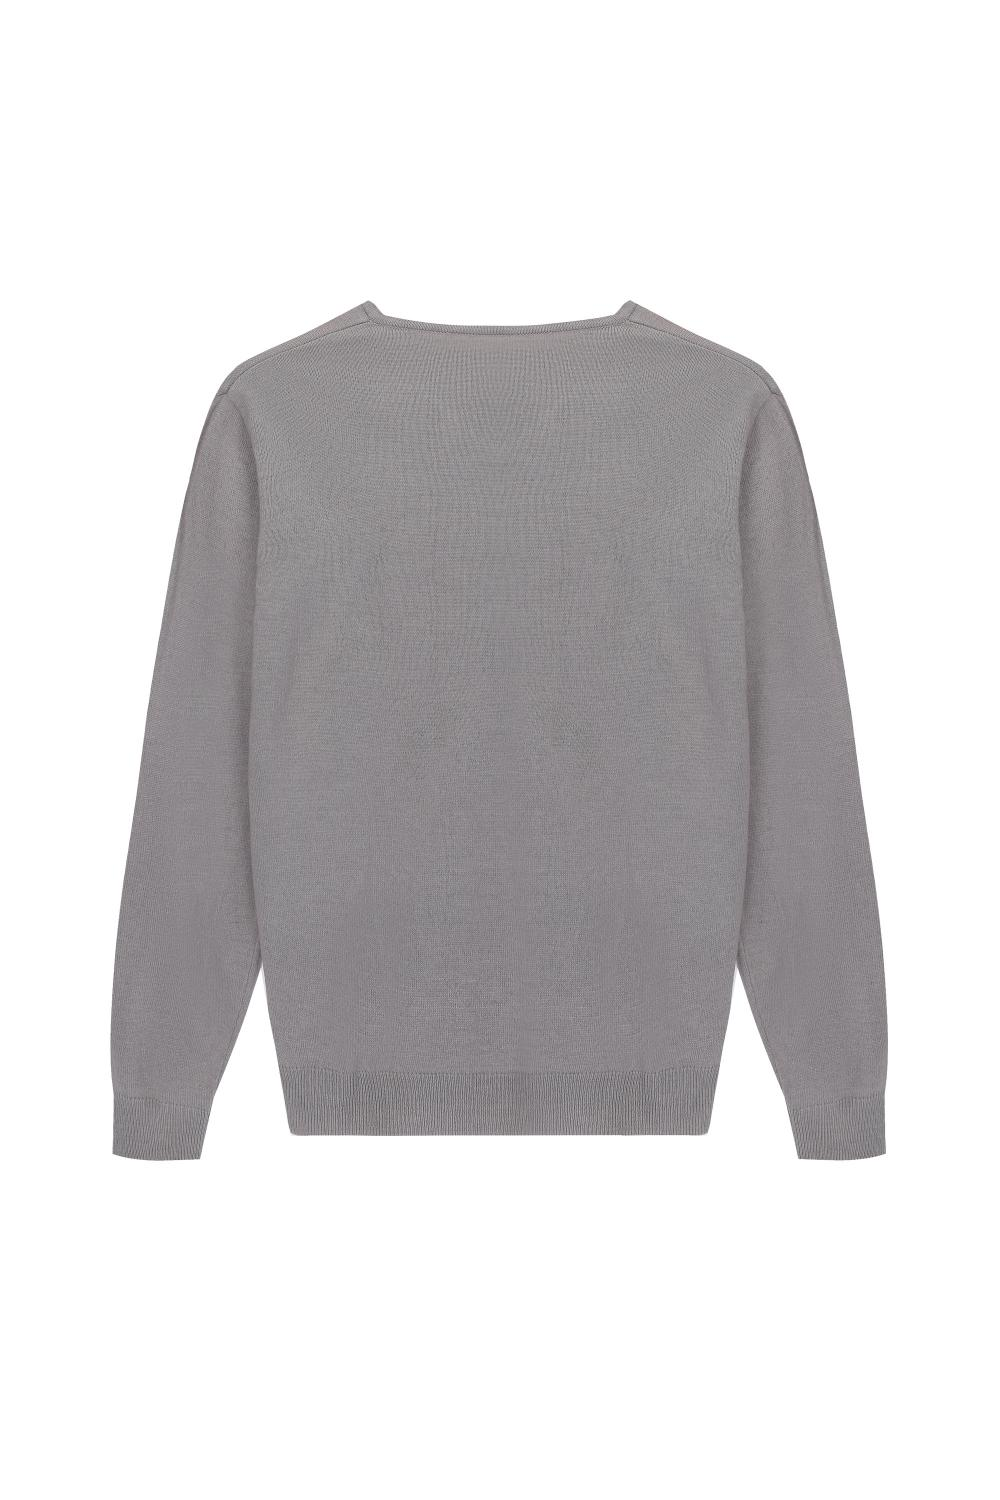 Men's Knitted Essential Wool/Acrylic V-neck Pullover